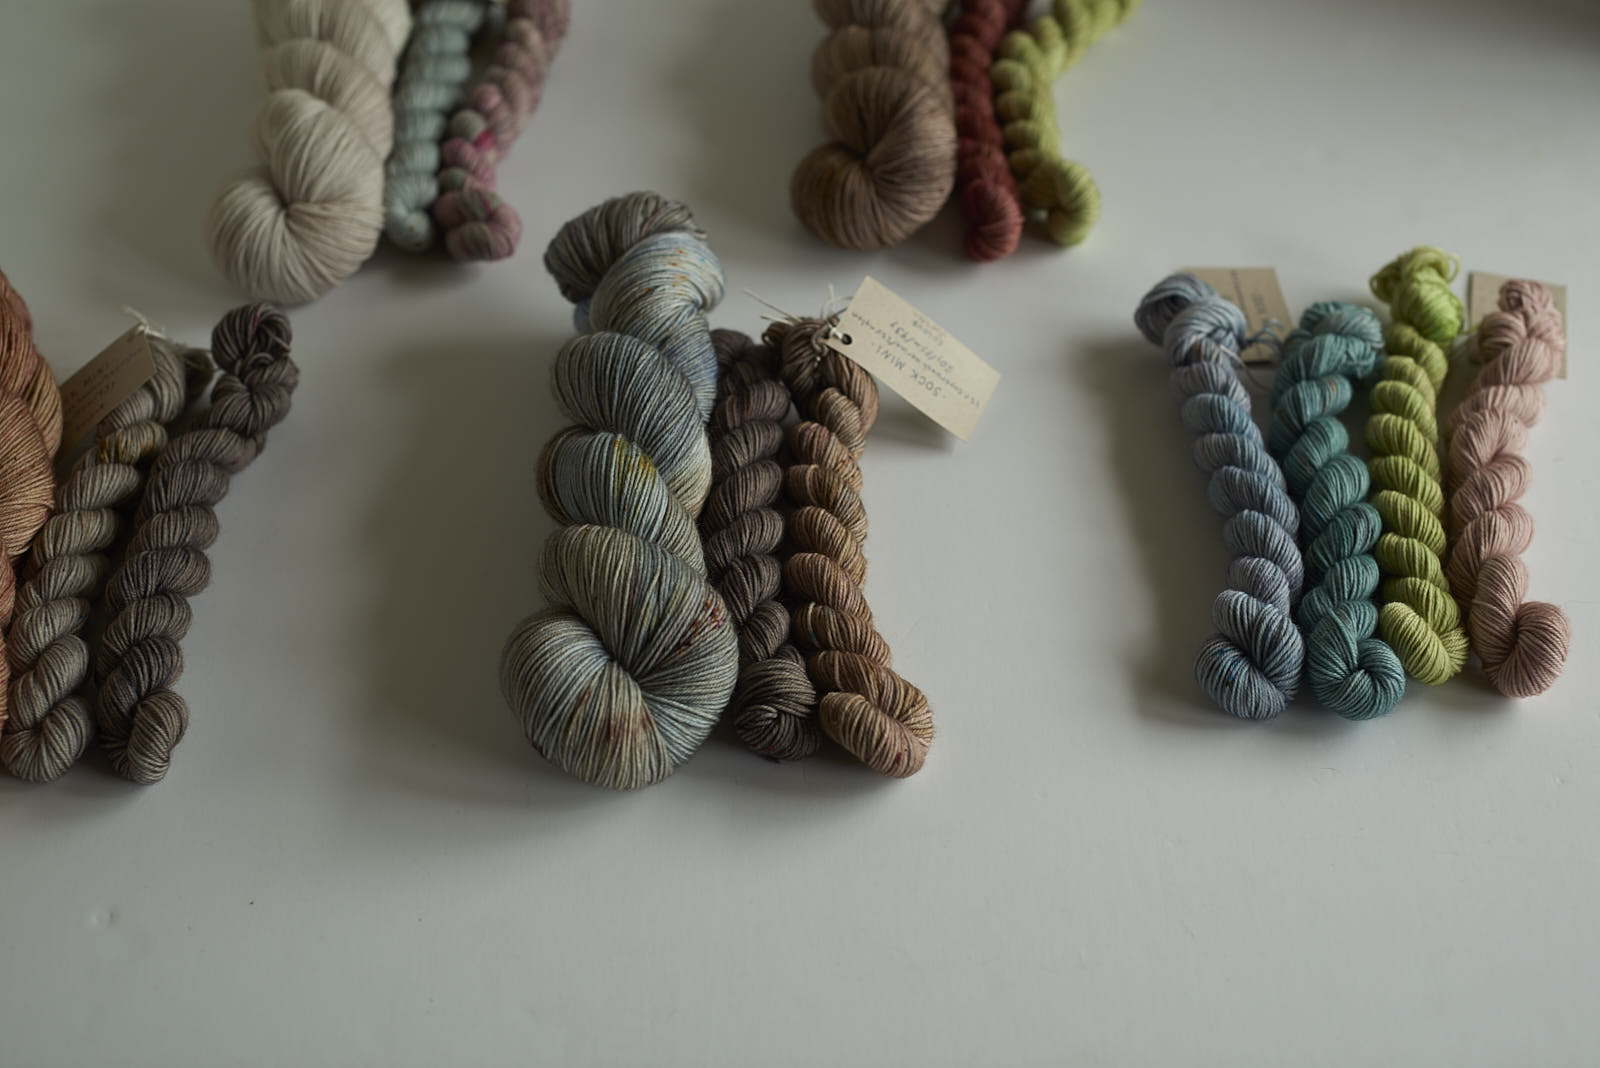 sock kits everywhere! Keep on reading for pattern sale news...